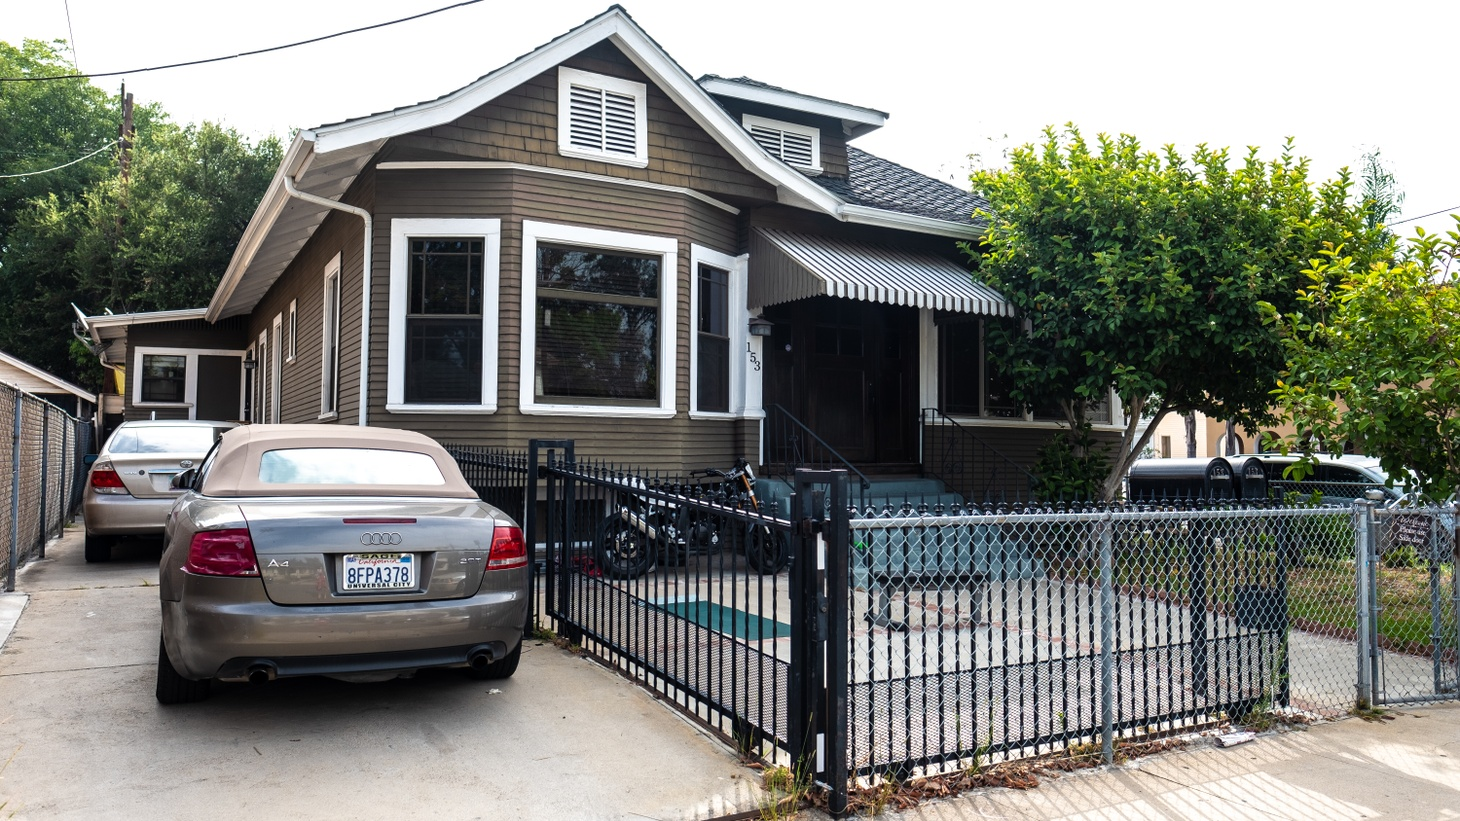 This 5-bedroom house in Highland Park is home to 25 people.